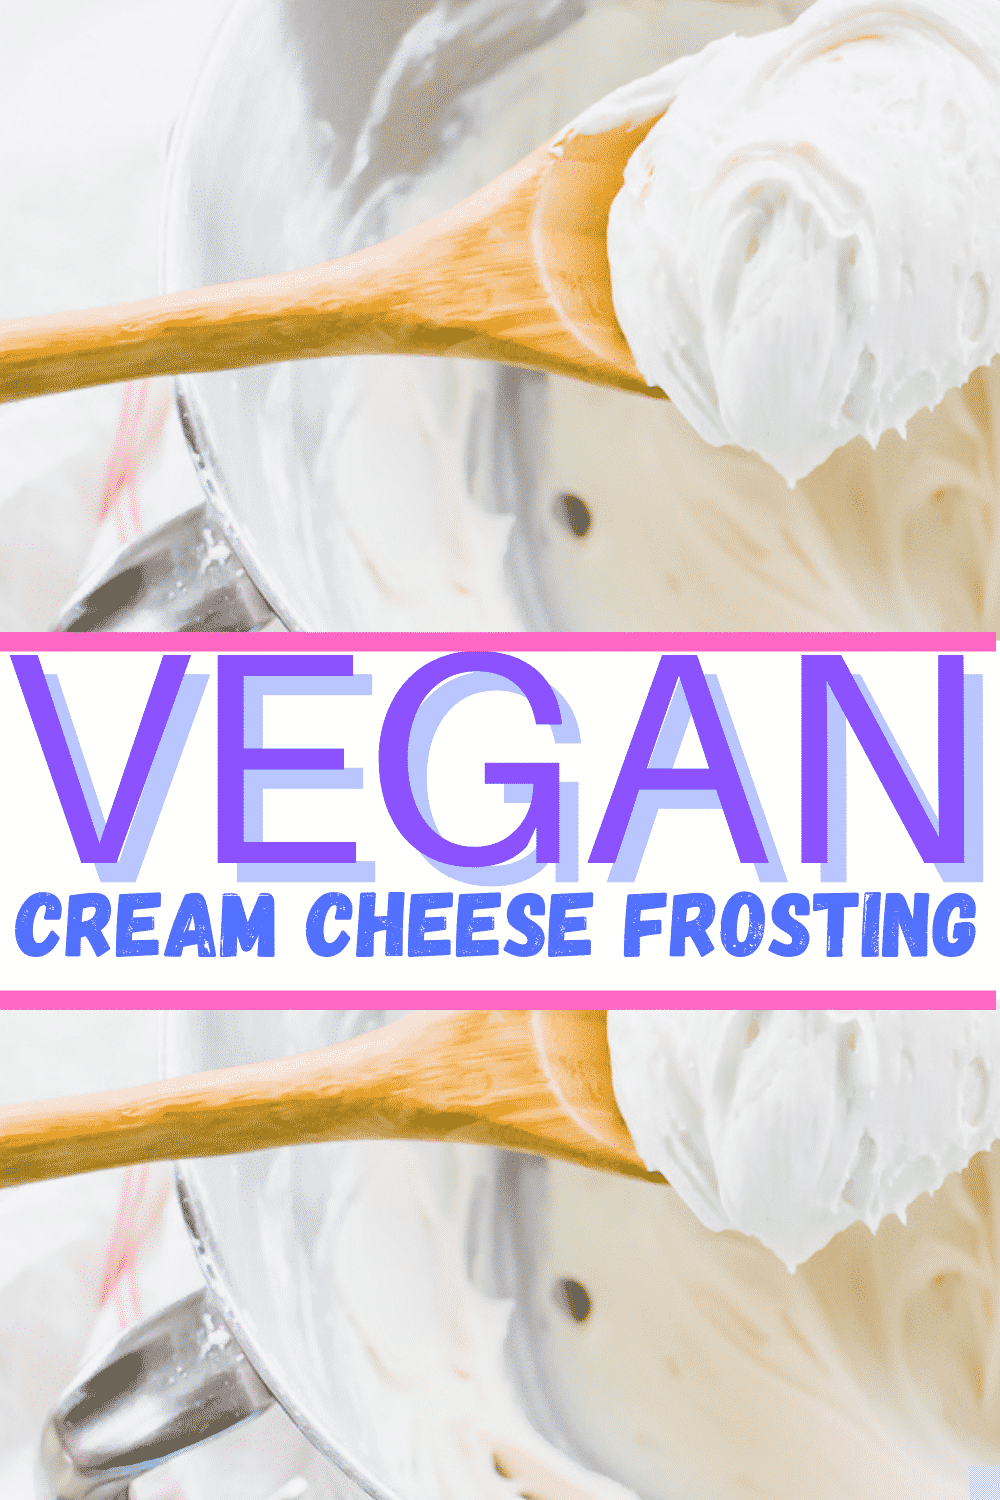 Vegan Cream Cheese Frosting is the most simple dairy-free #dessert! Add this 4-ingredient frosting to your favorite vegan cake, cookies, or donuts. #vegandessert #dairyfree #veganfrosting